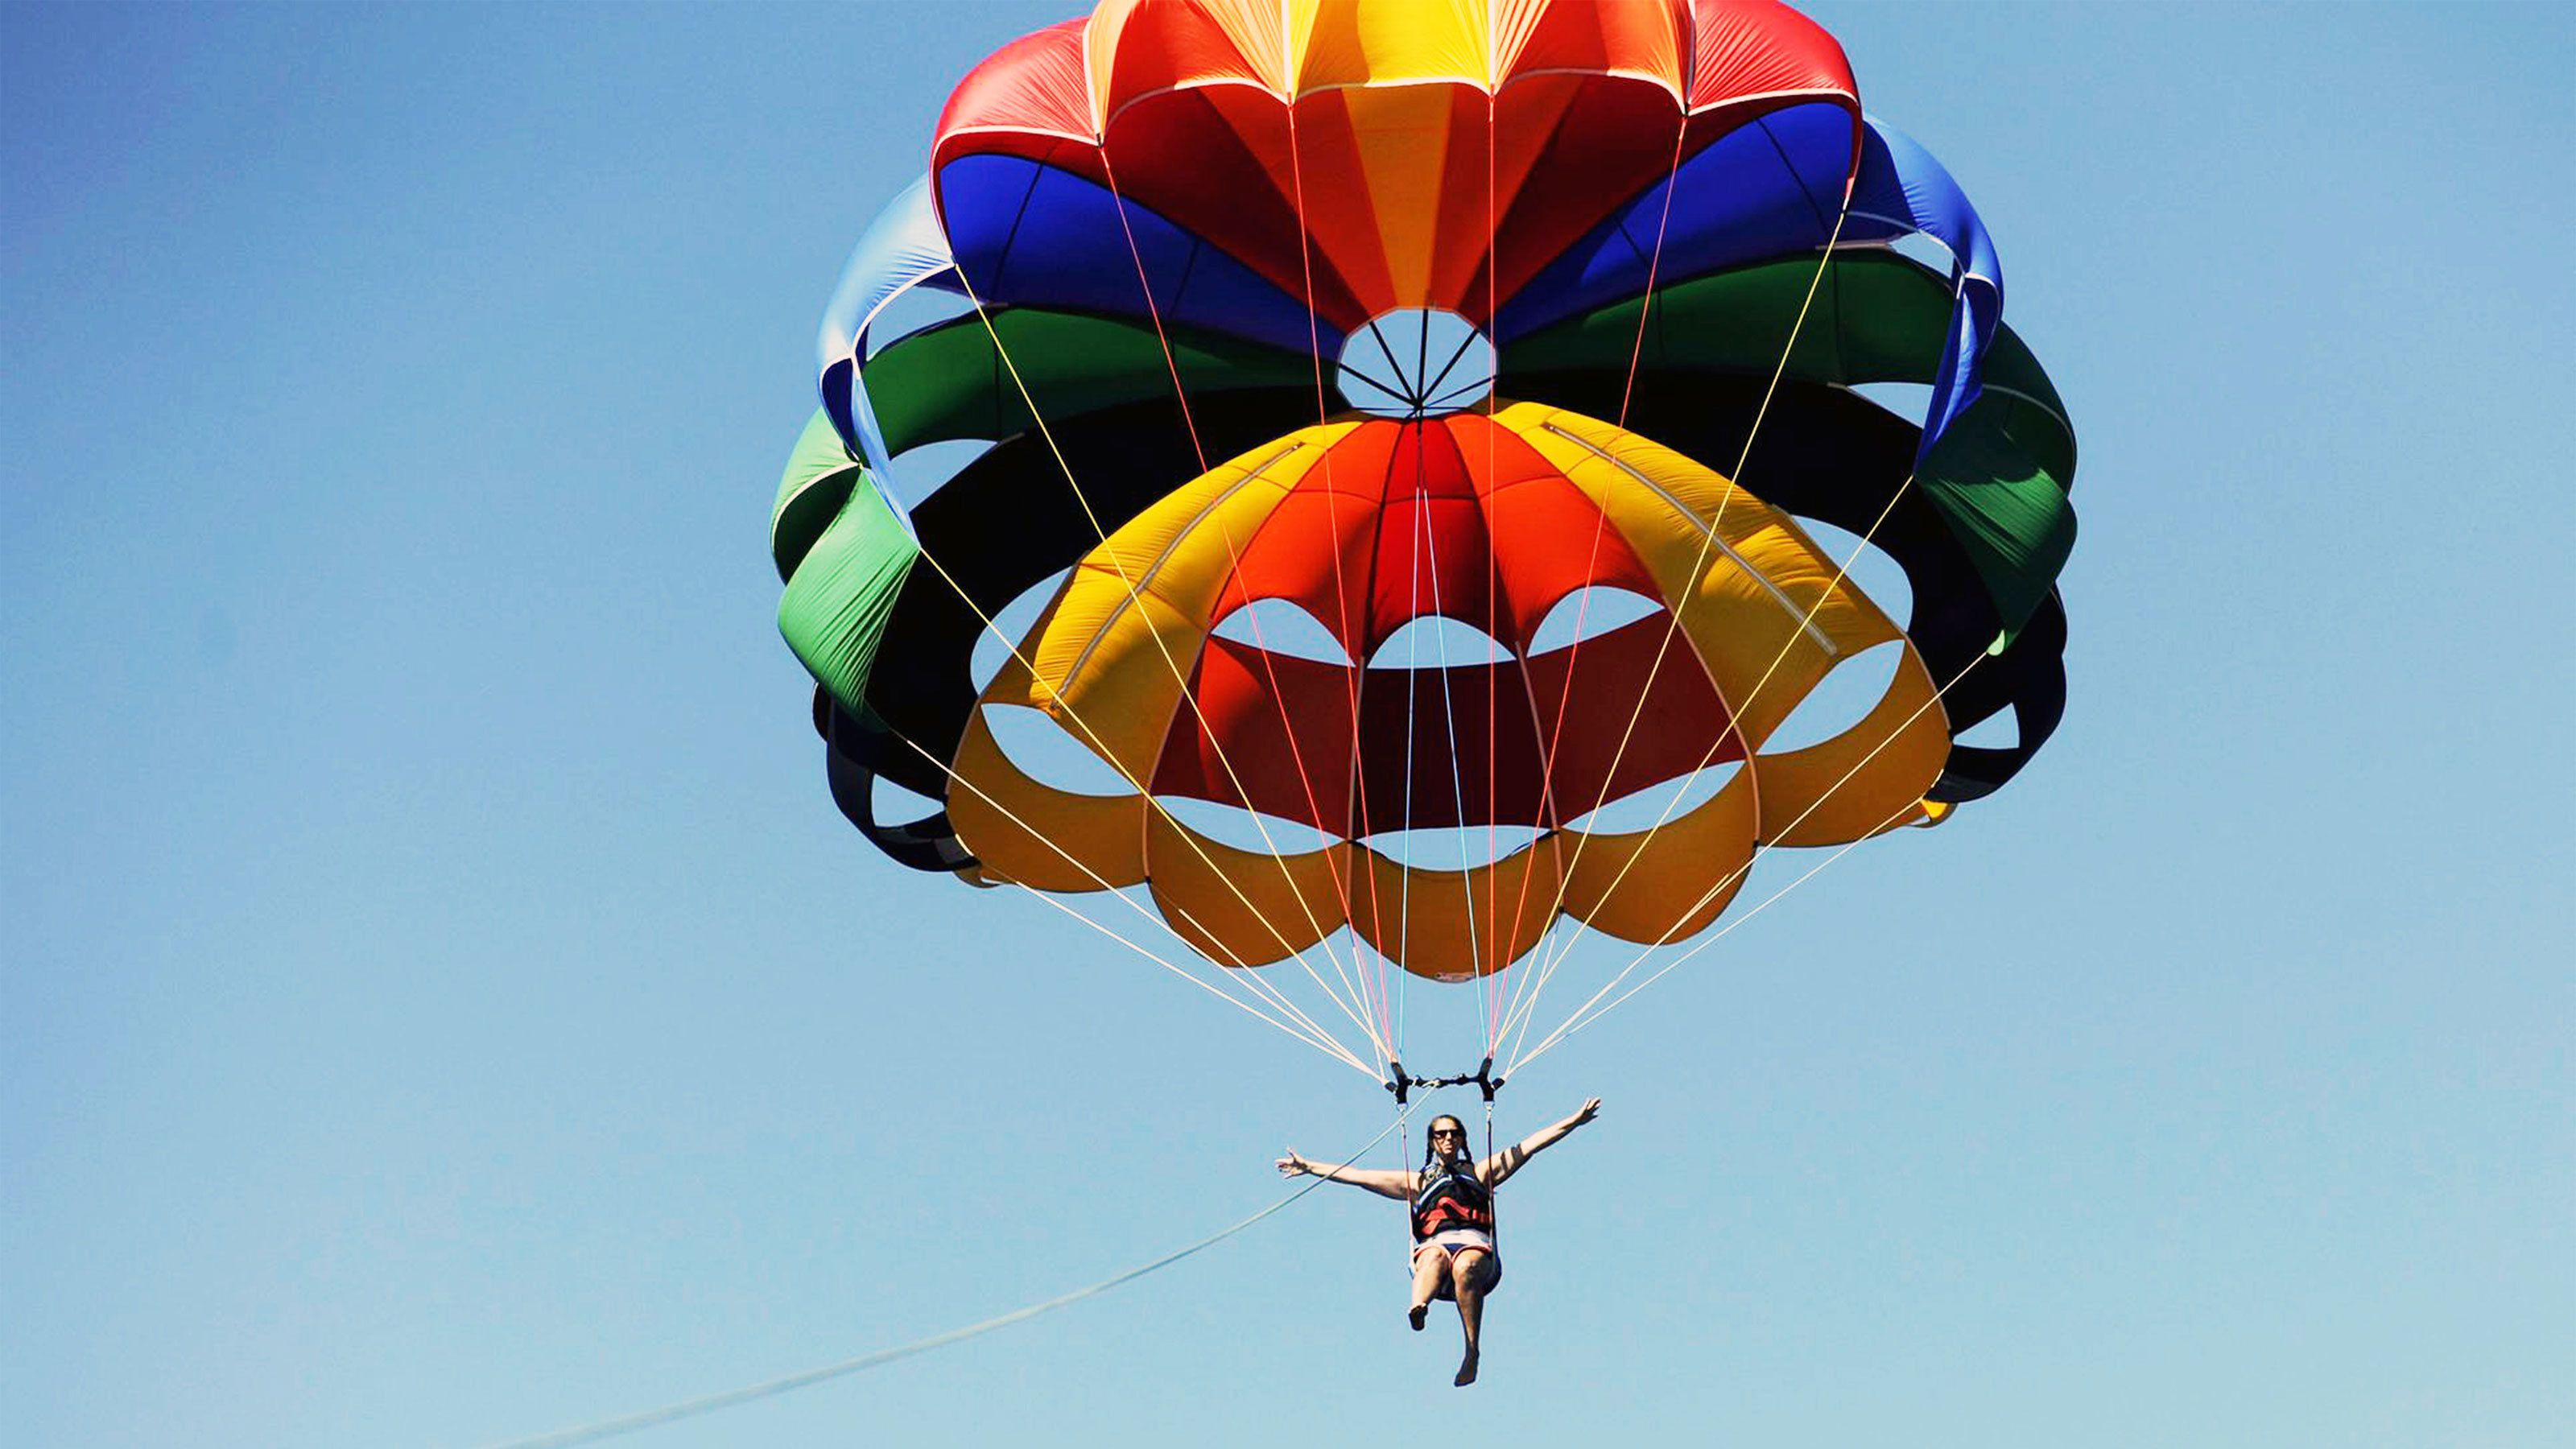 Colorful parachute and parasailers in Dubai